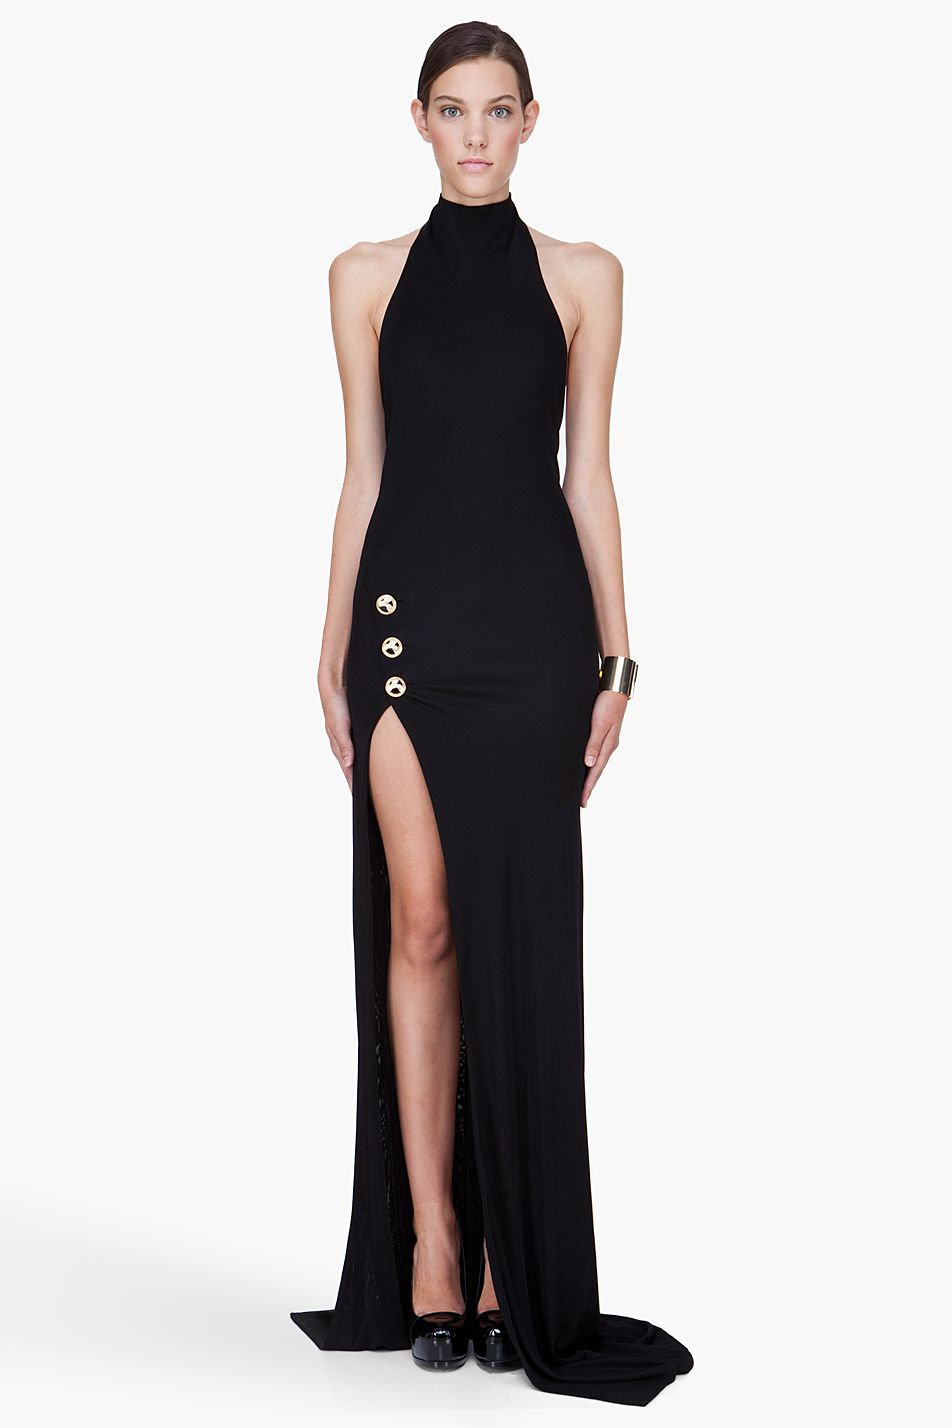 795908c3e4d Balmain Long Black Backless Side Slit Dress in Black